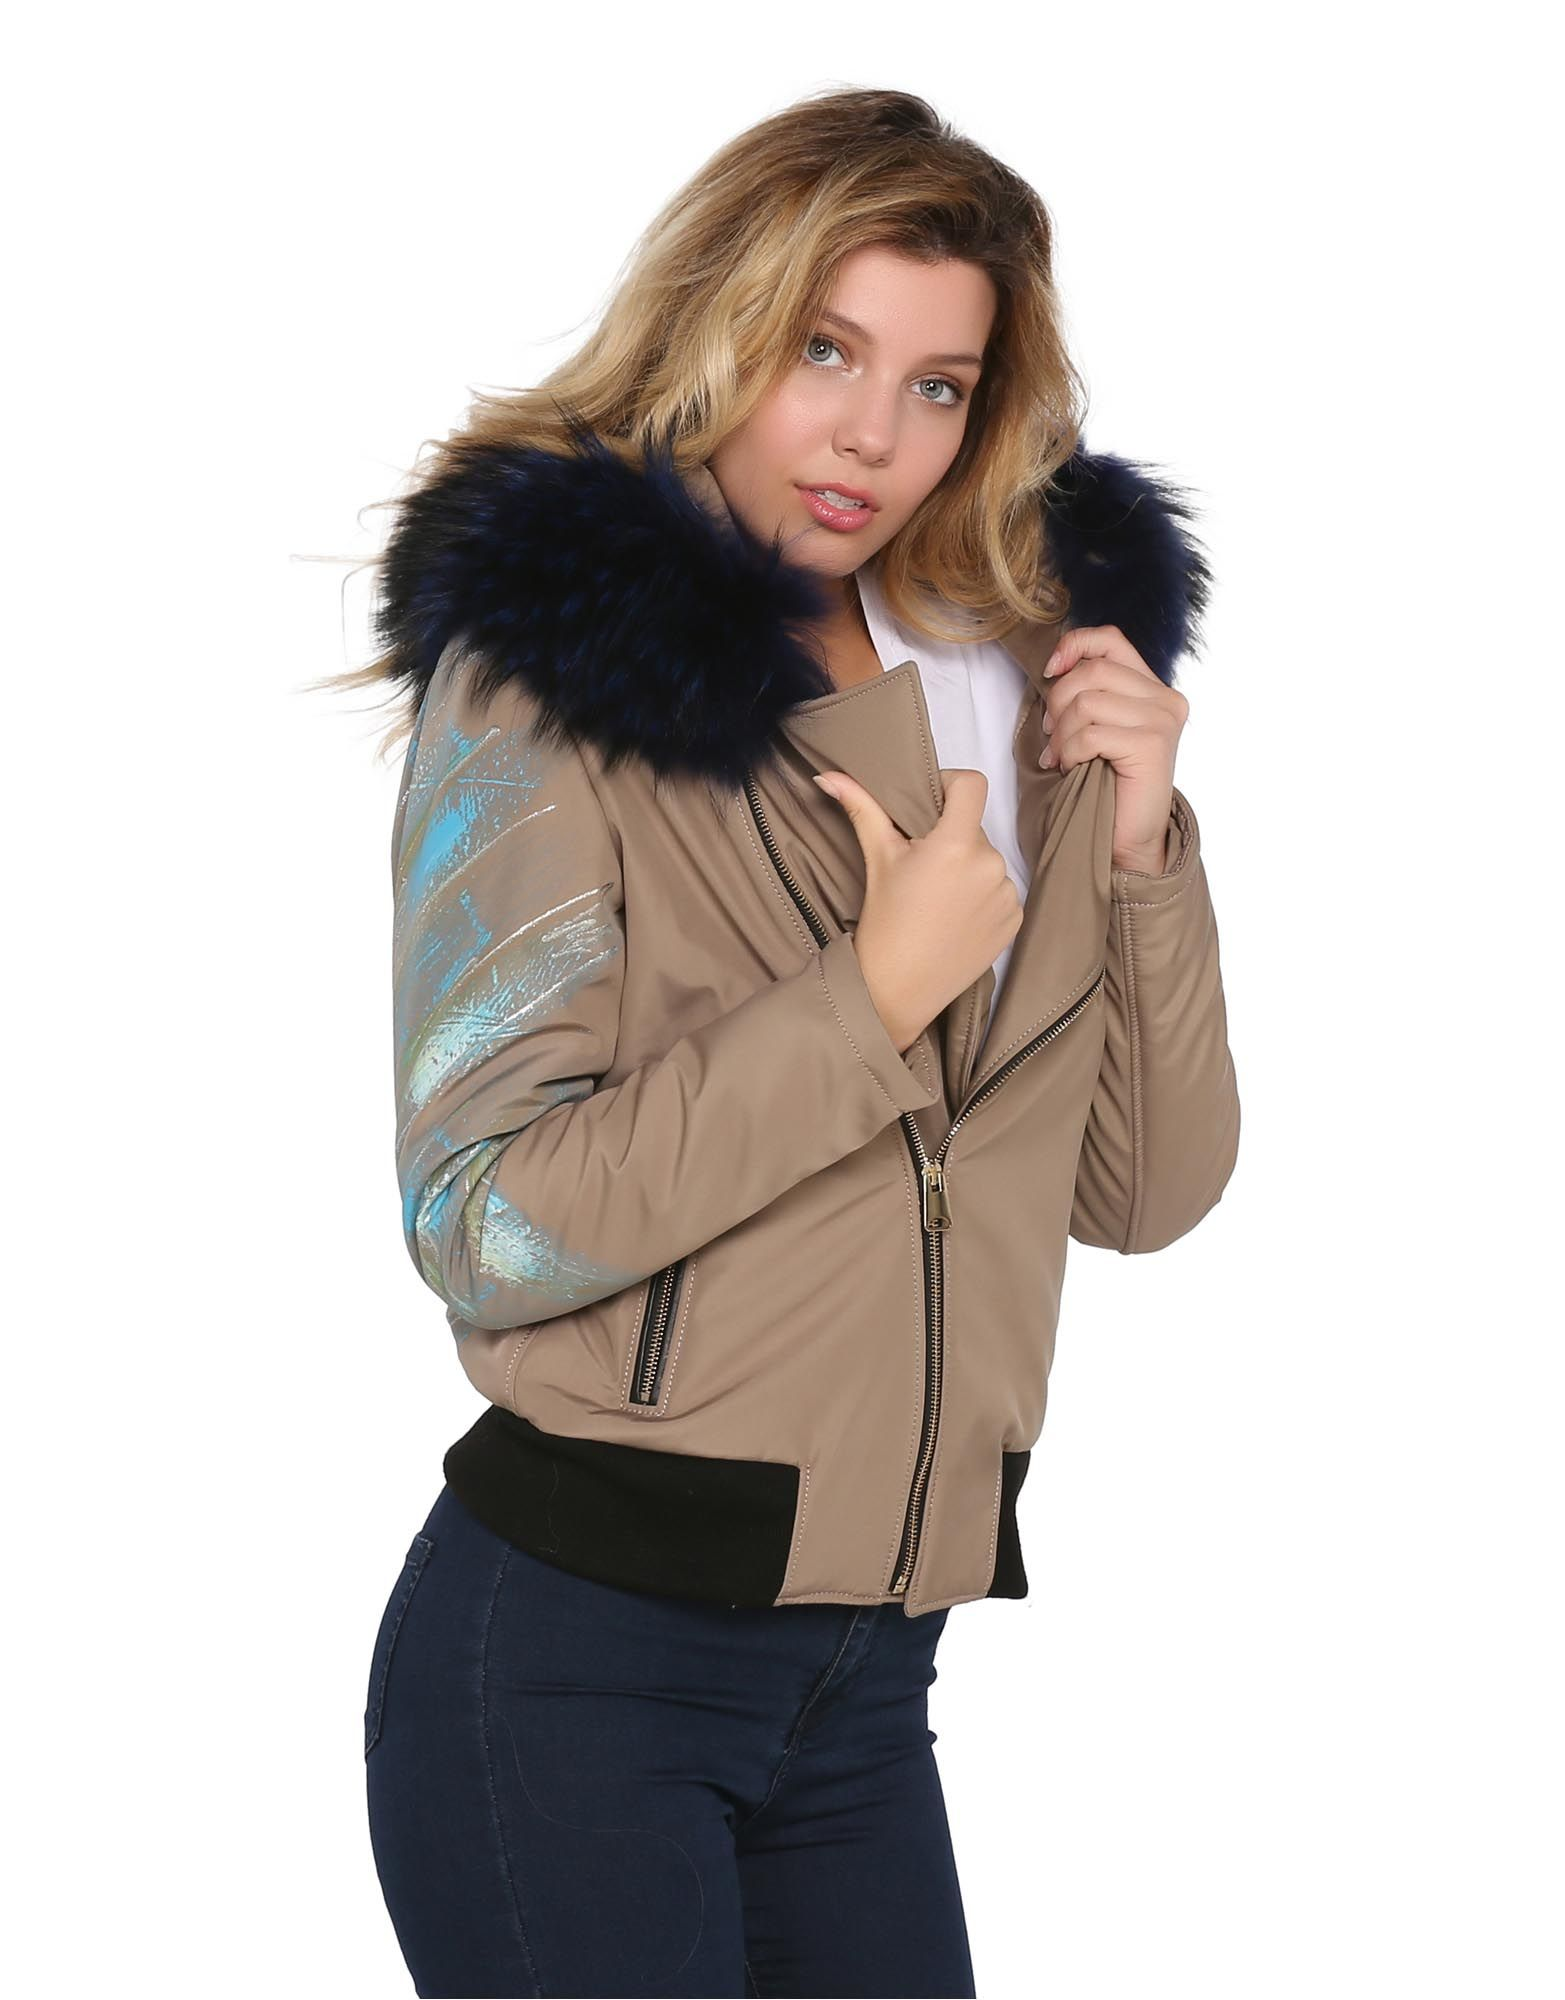 * Beige Leather&Fabric Woman Jacket With Real Fur